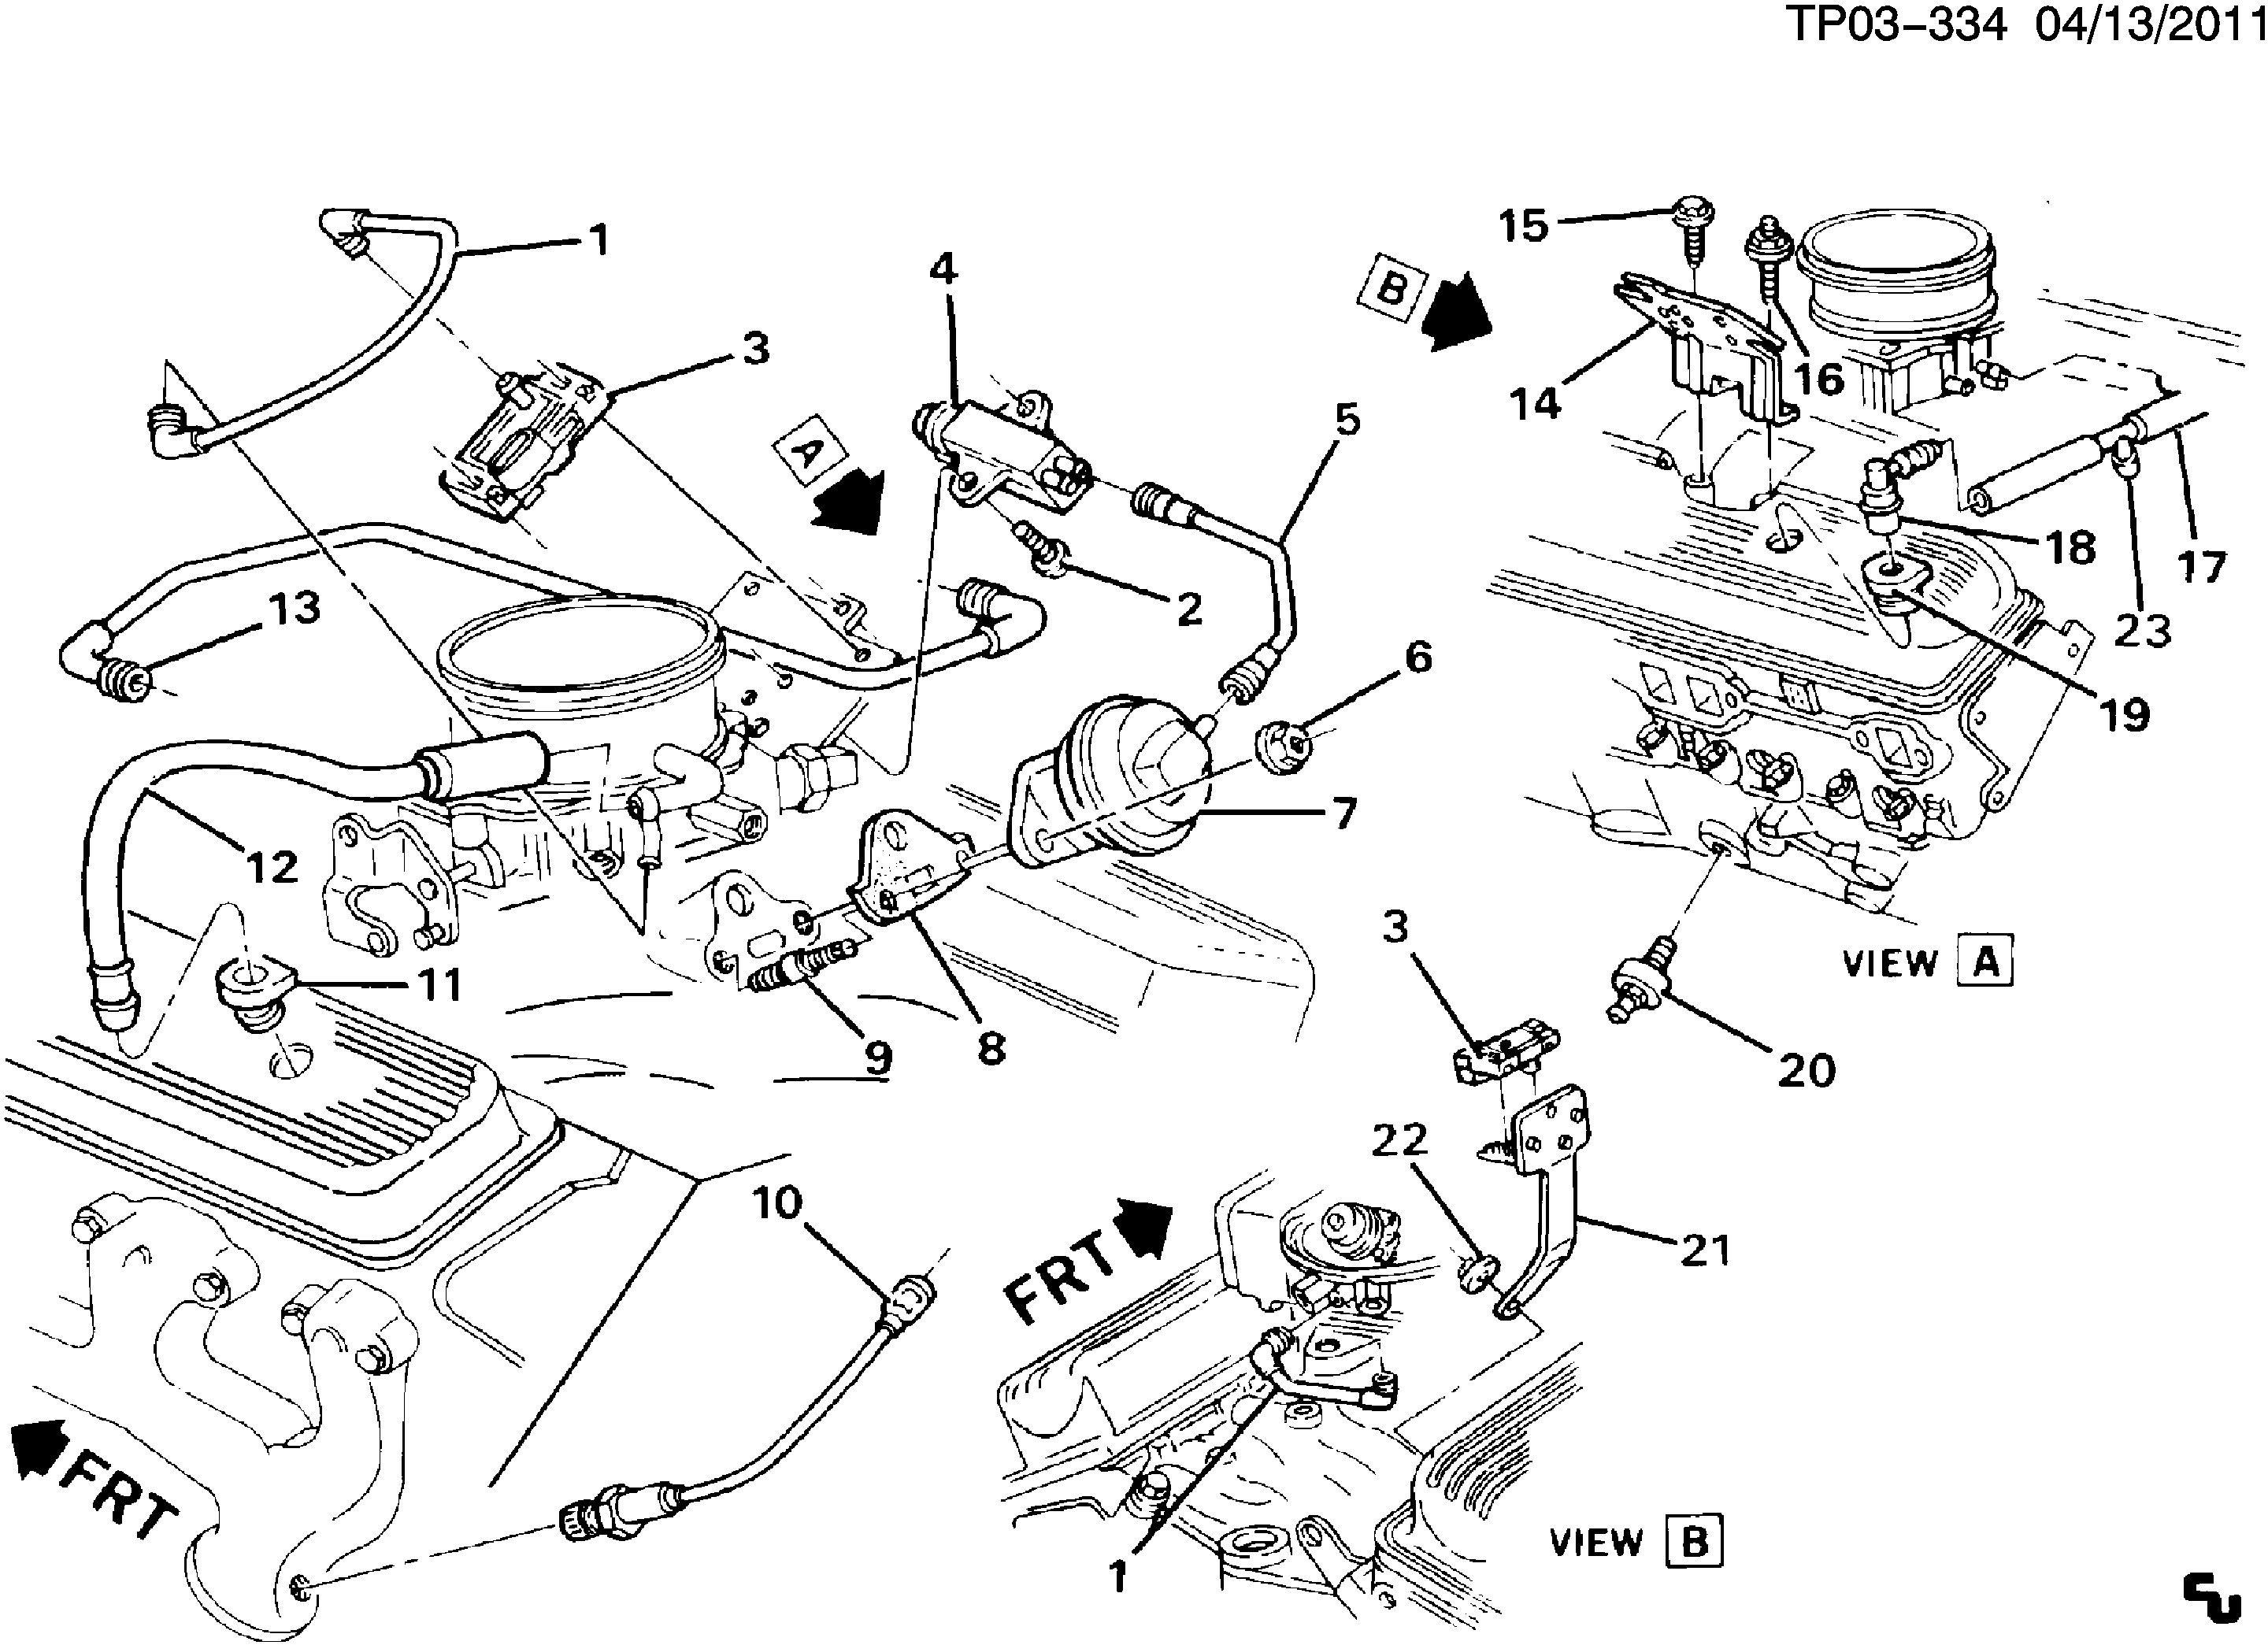 4 3 Liter V6 Vortec Engine Diagram 350 5 7 Exterior Engine Diagram Wiring Diagram forward Of 4 3 Liter V6 Vortec Engine Diagram